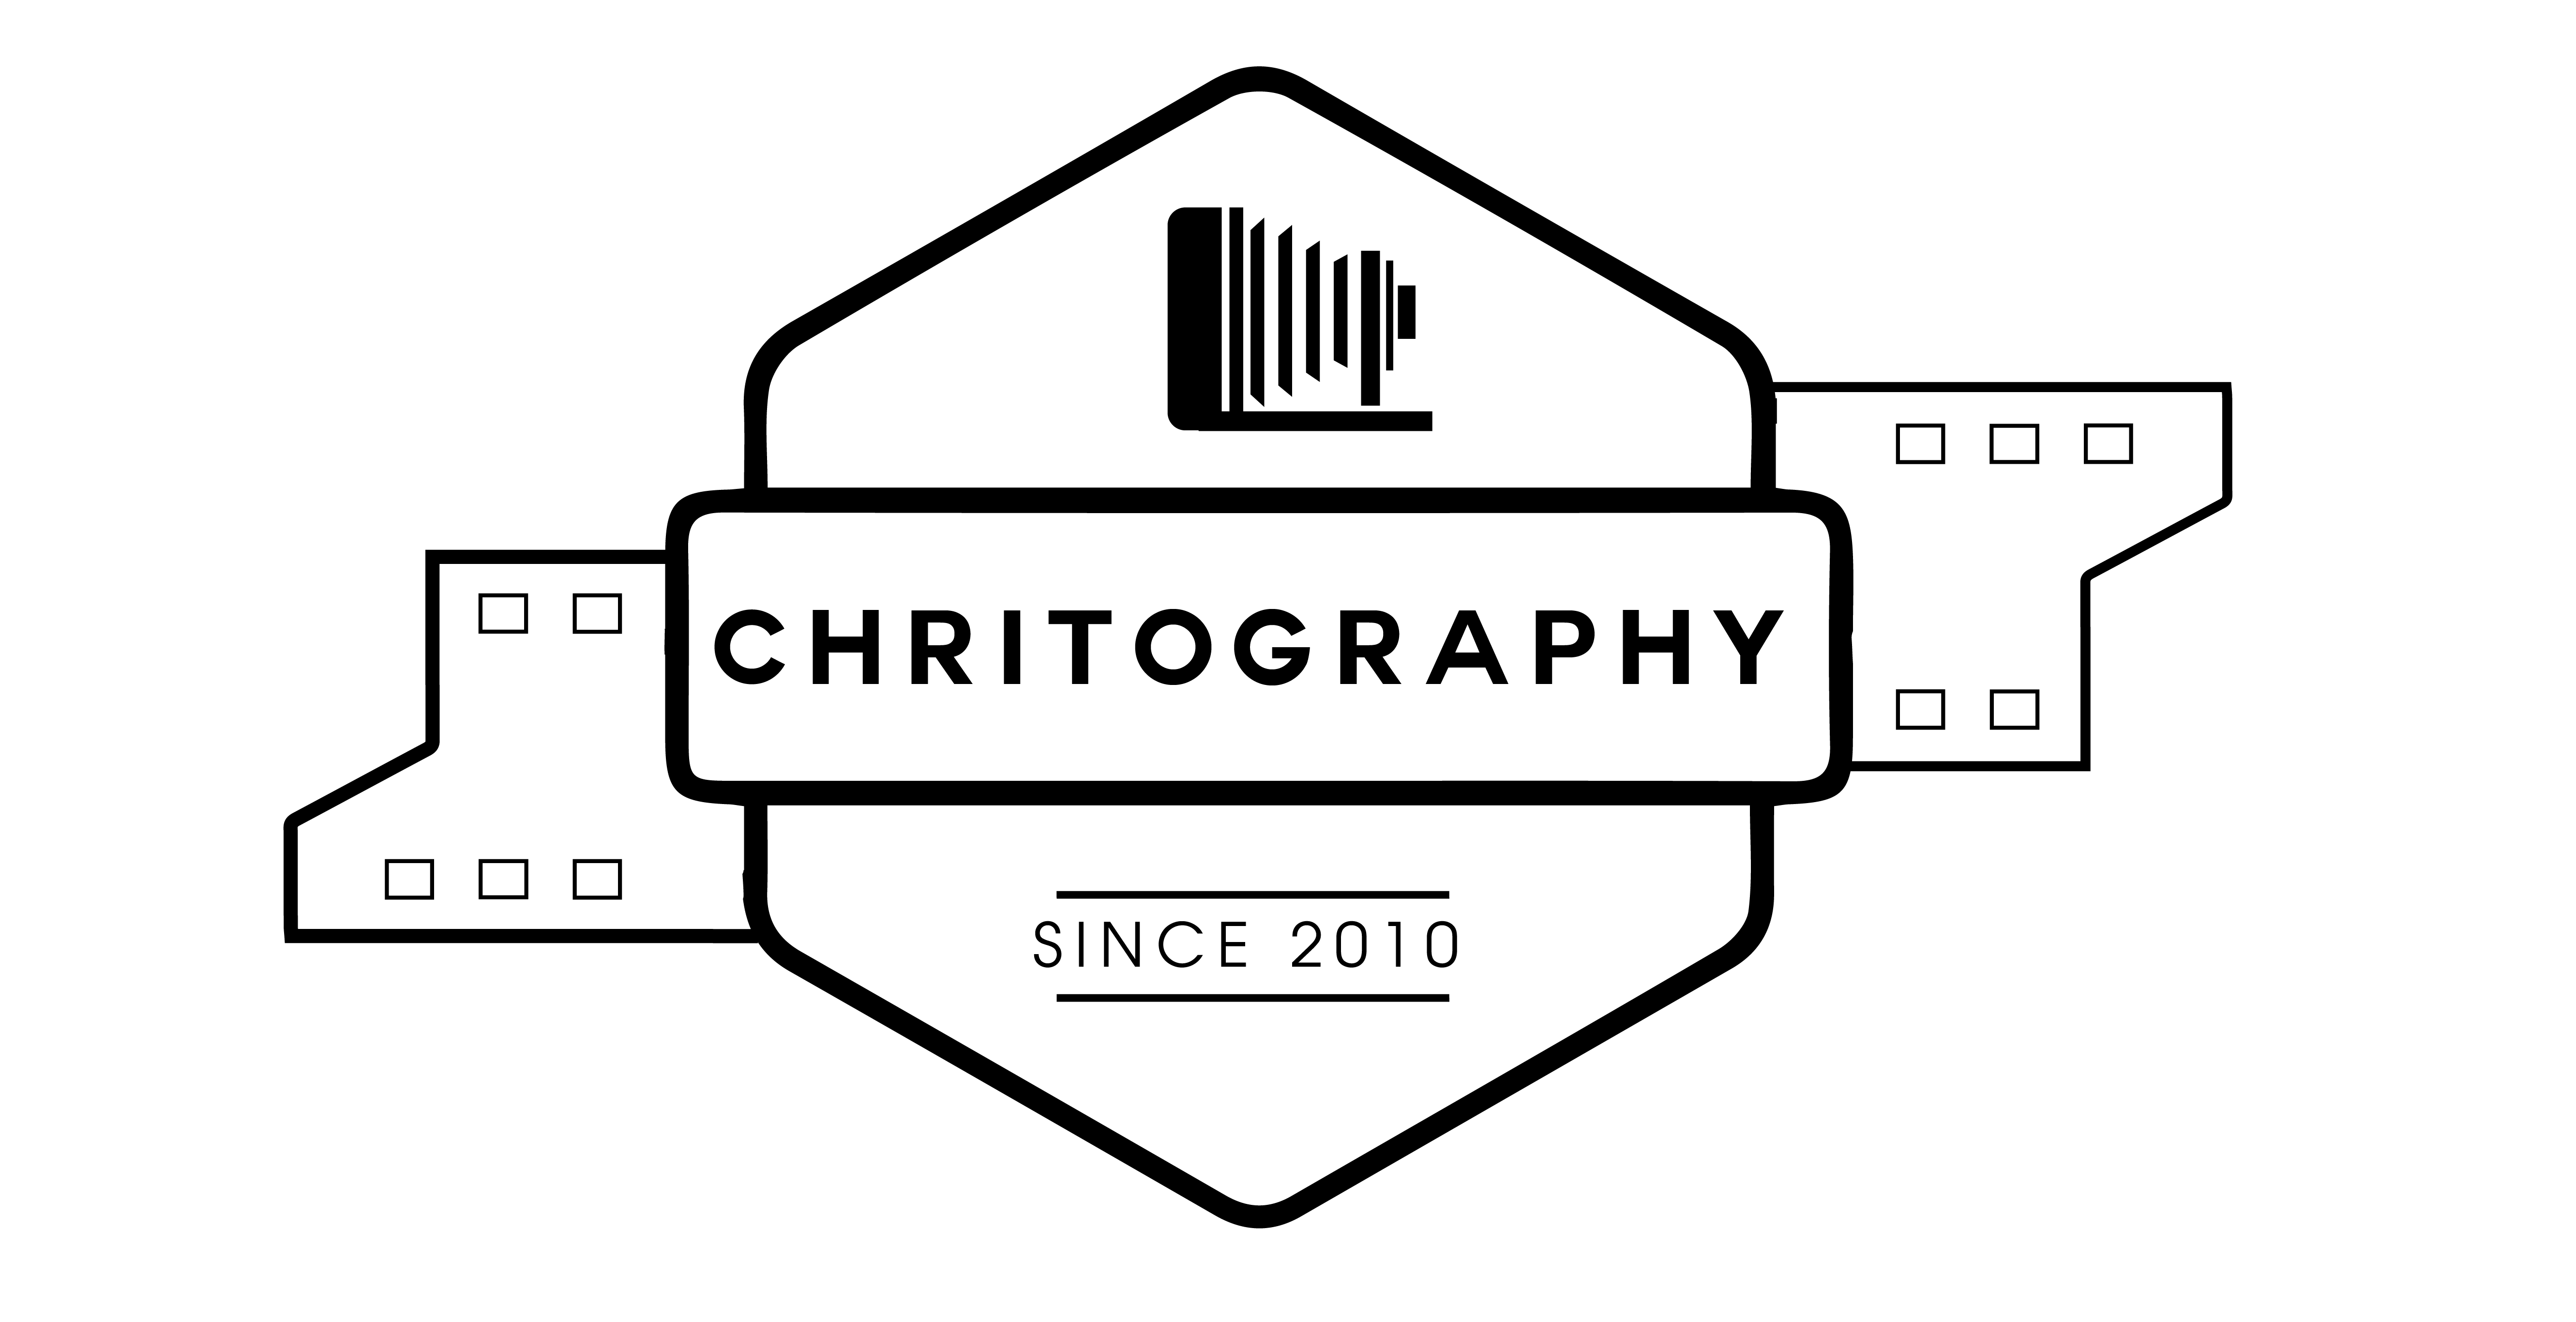 CHRITOGRAPHY